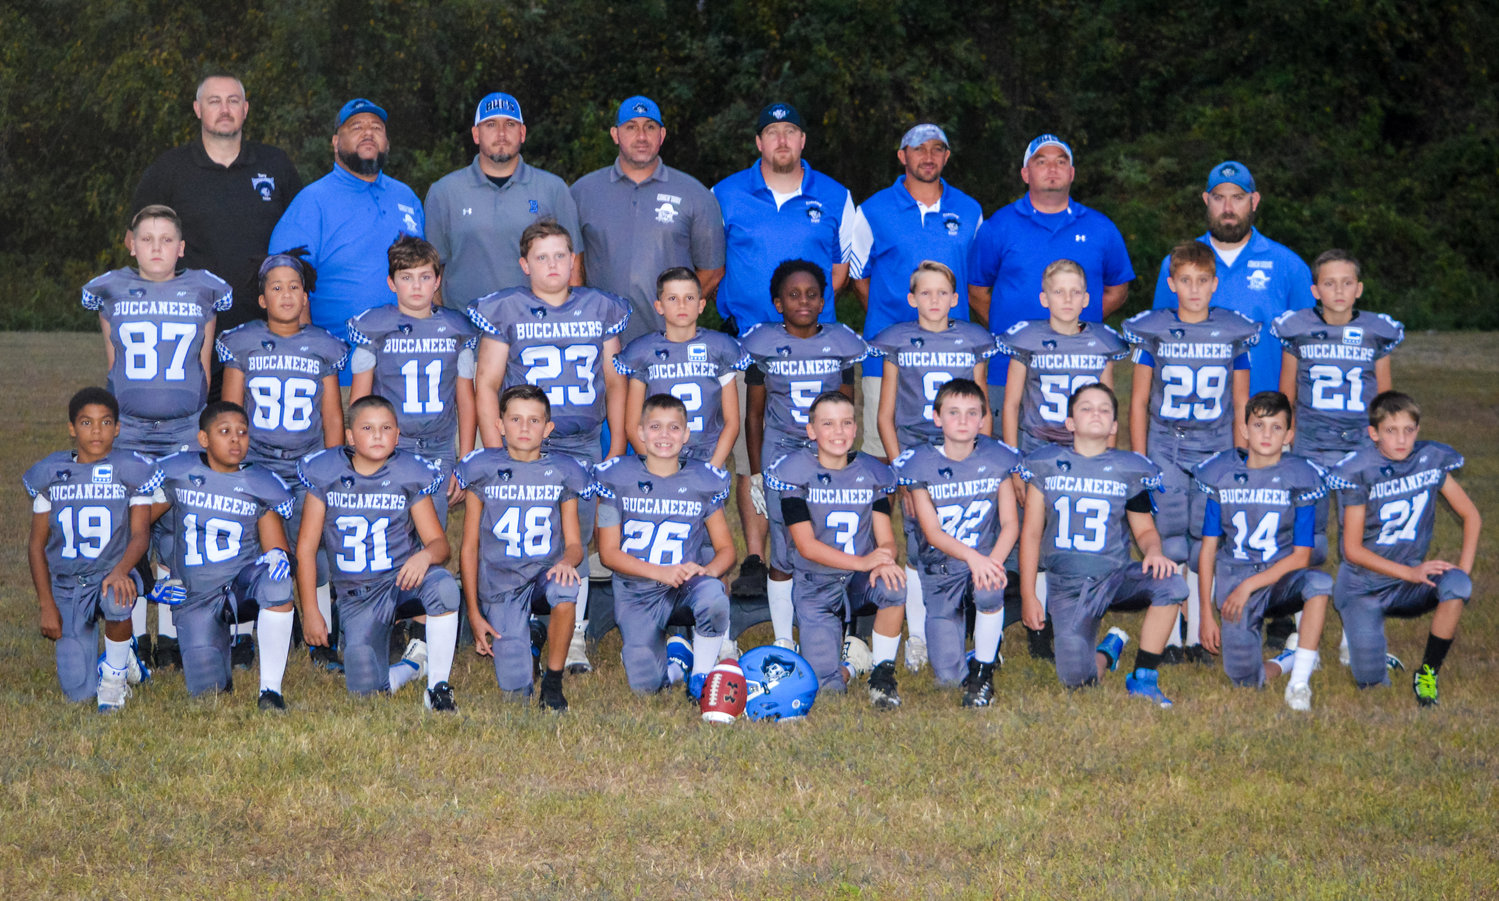 The Bucs went 2-0 in the playoffs with victories over Cape and South Bowie to win the Anne Arundel Youth Football Association 10U National division championship.